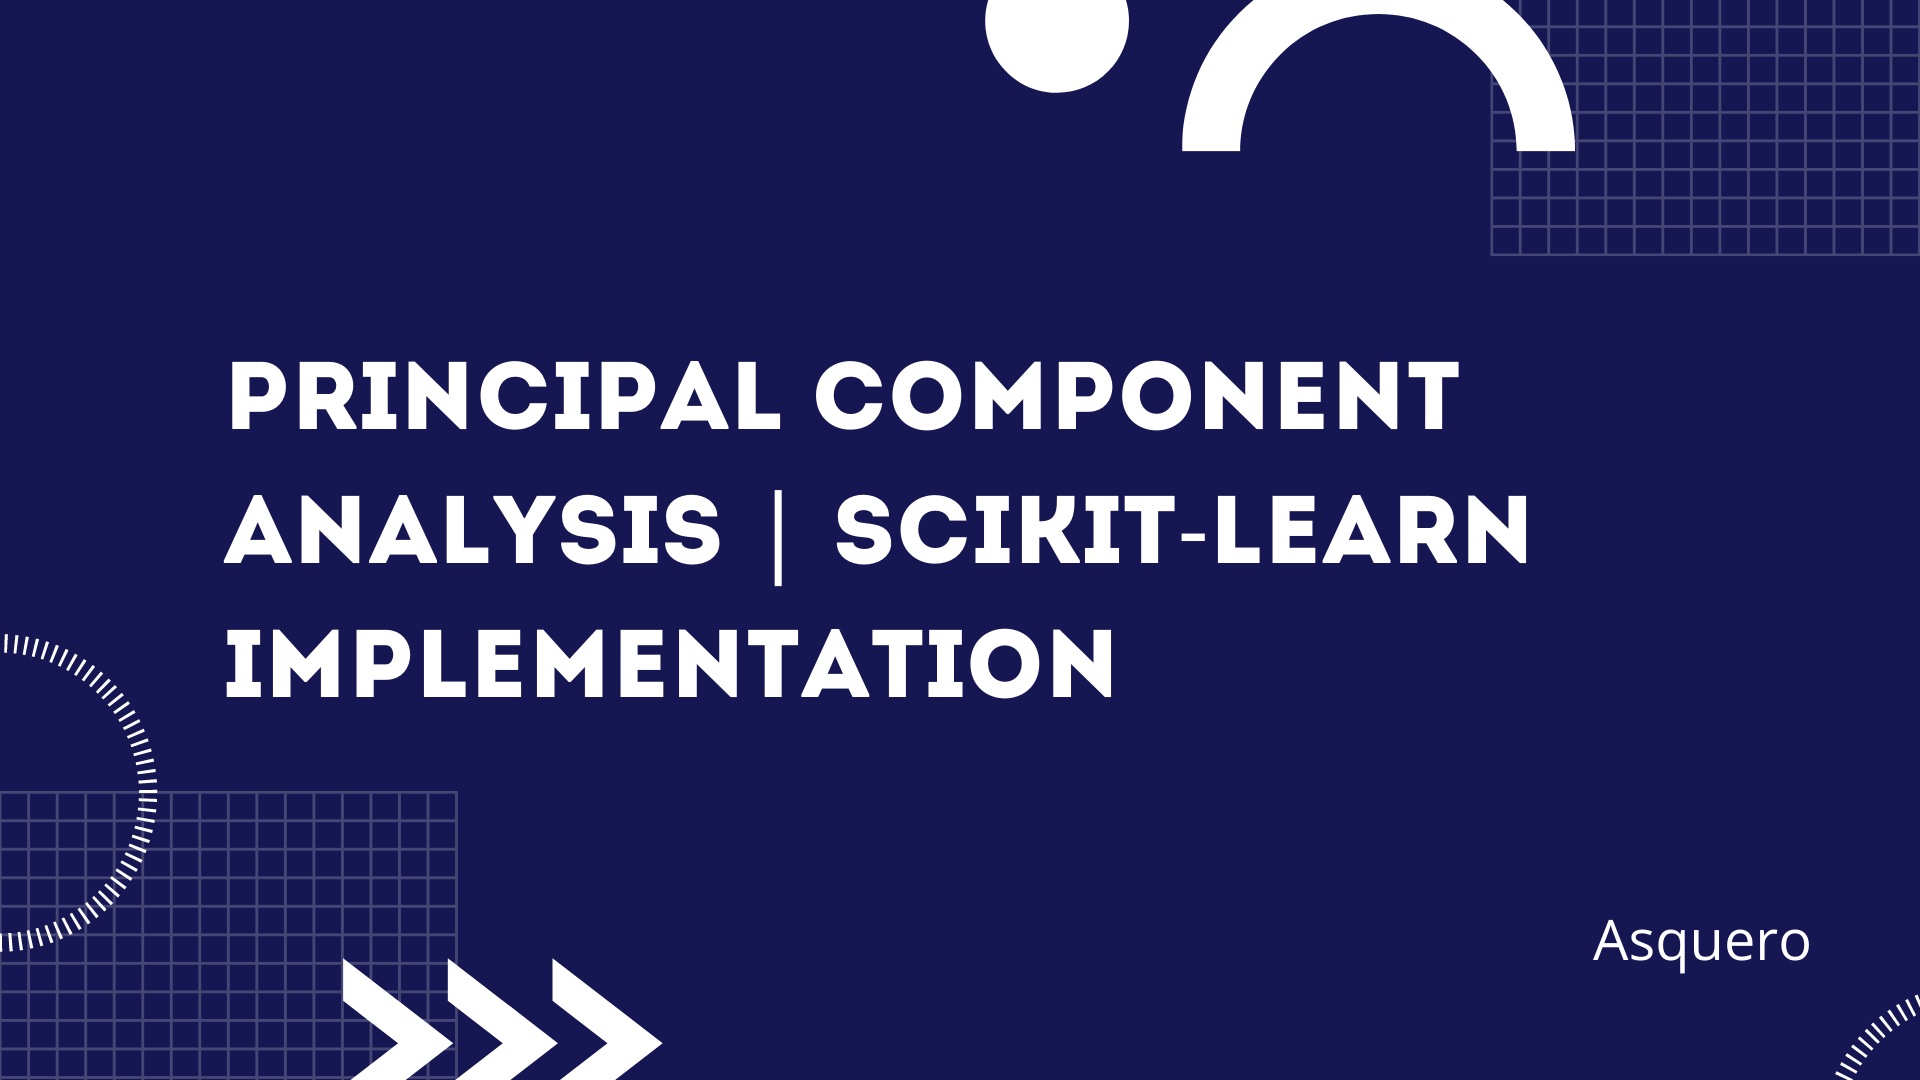 Principal Component Analysis | Scikit-Learn Implementation